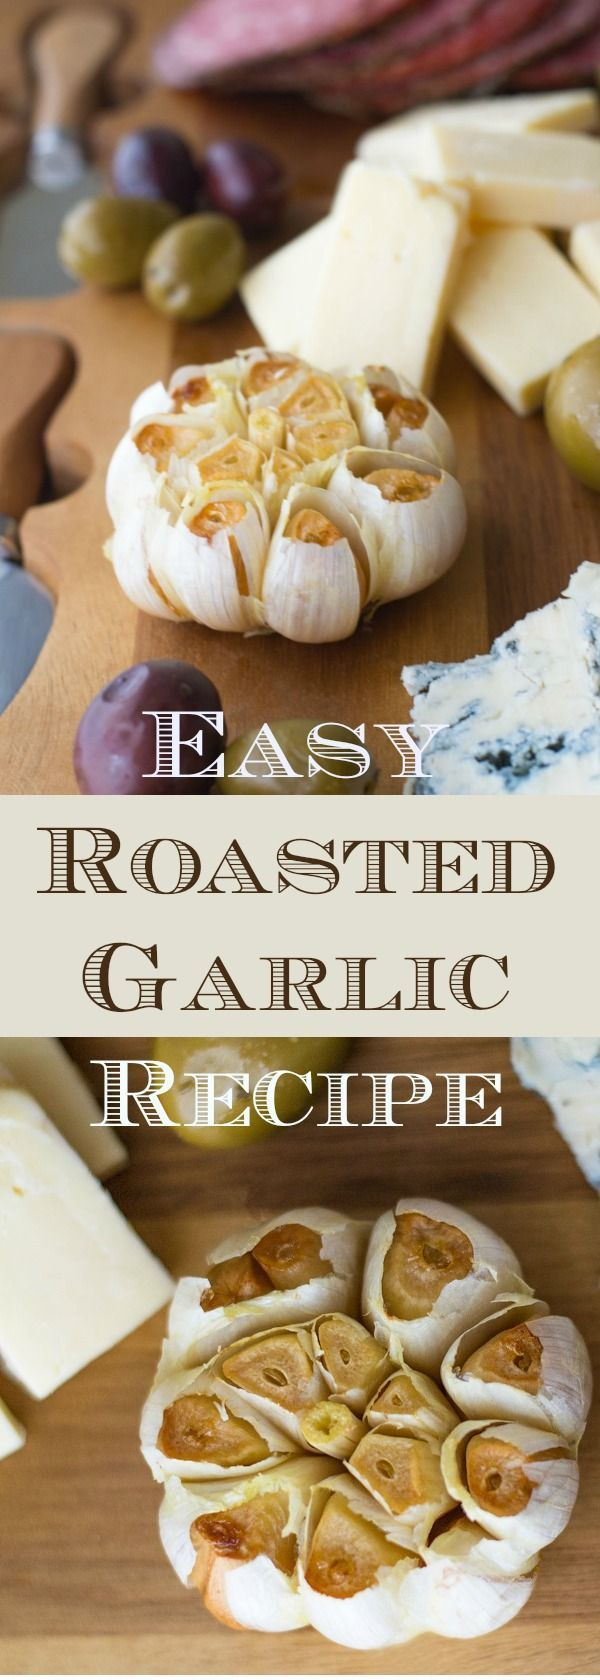 Roasted garlic adds a gourmet touch to sandwiches, charcuterie boards, dips, spreads and more. And making it yourself is so easy! Just two ingredients and 5 minutes of prep creates an appetizer that any garlic-lover will adore.